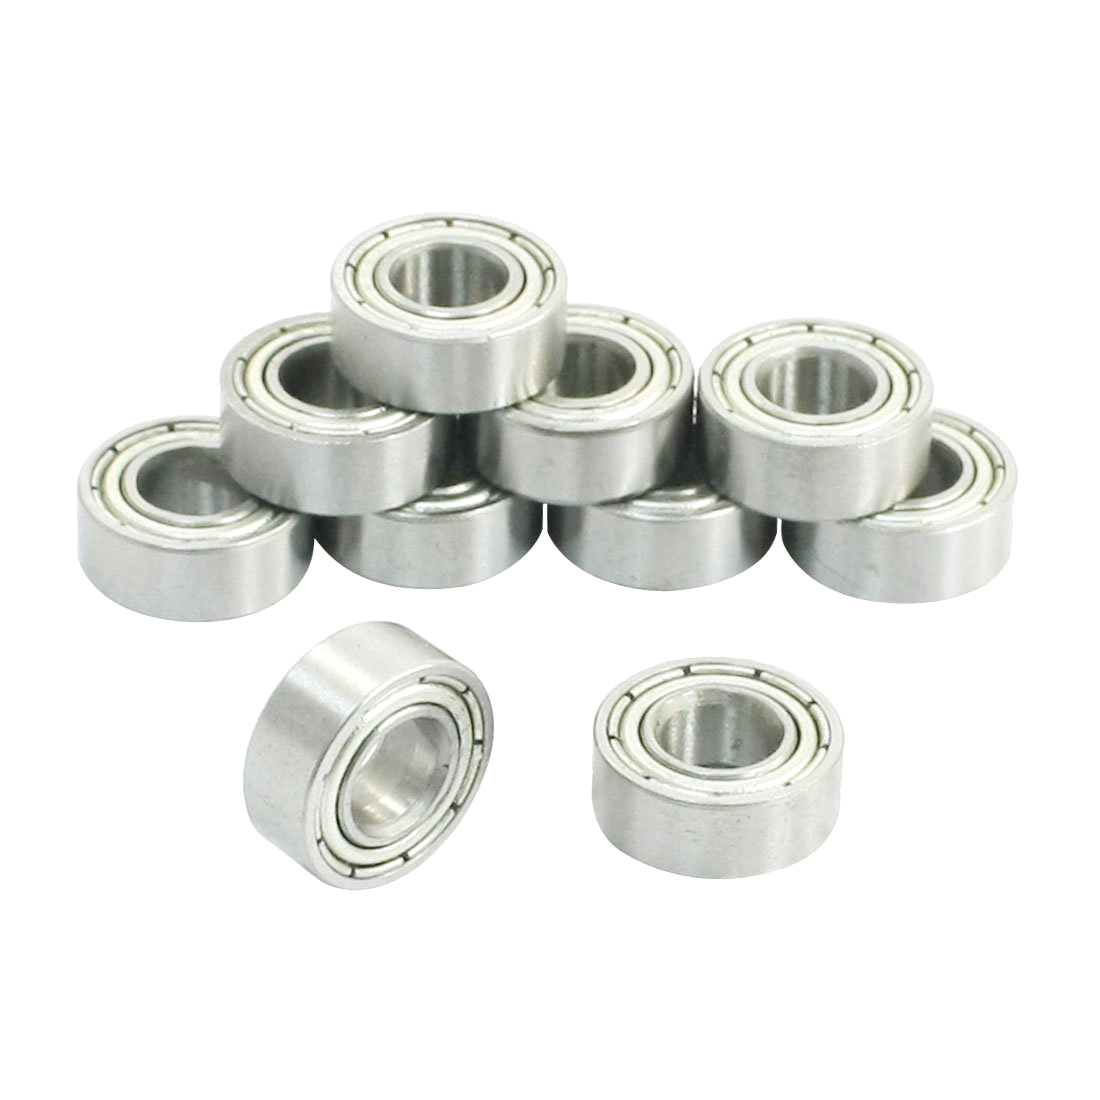 6mm x 13mm x 5mm Miniature Deep Groove Radial Ball Bearings 686Z 10Pcs gcr15 6326 zz or 6326 2rs 130x280x58mm high precision deep groove ball bearings abec 1 p0